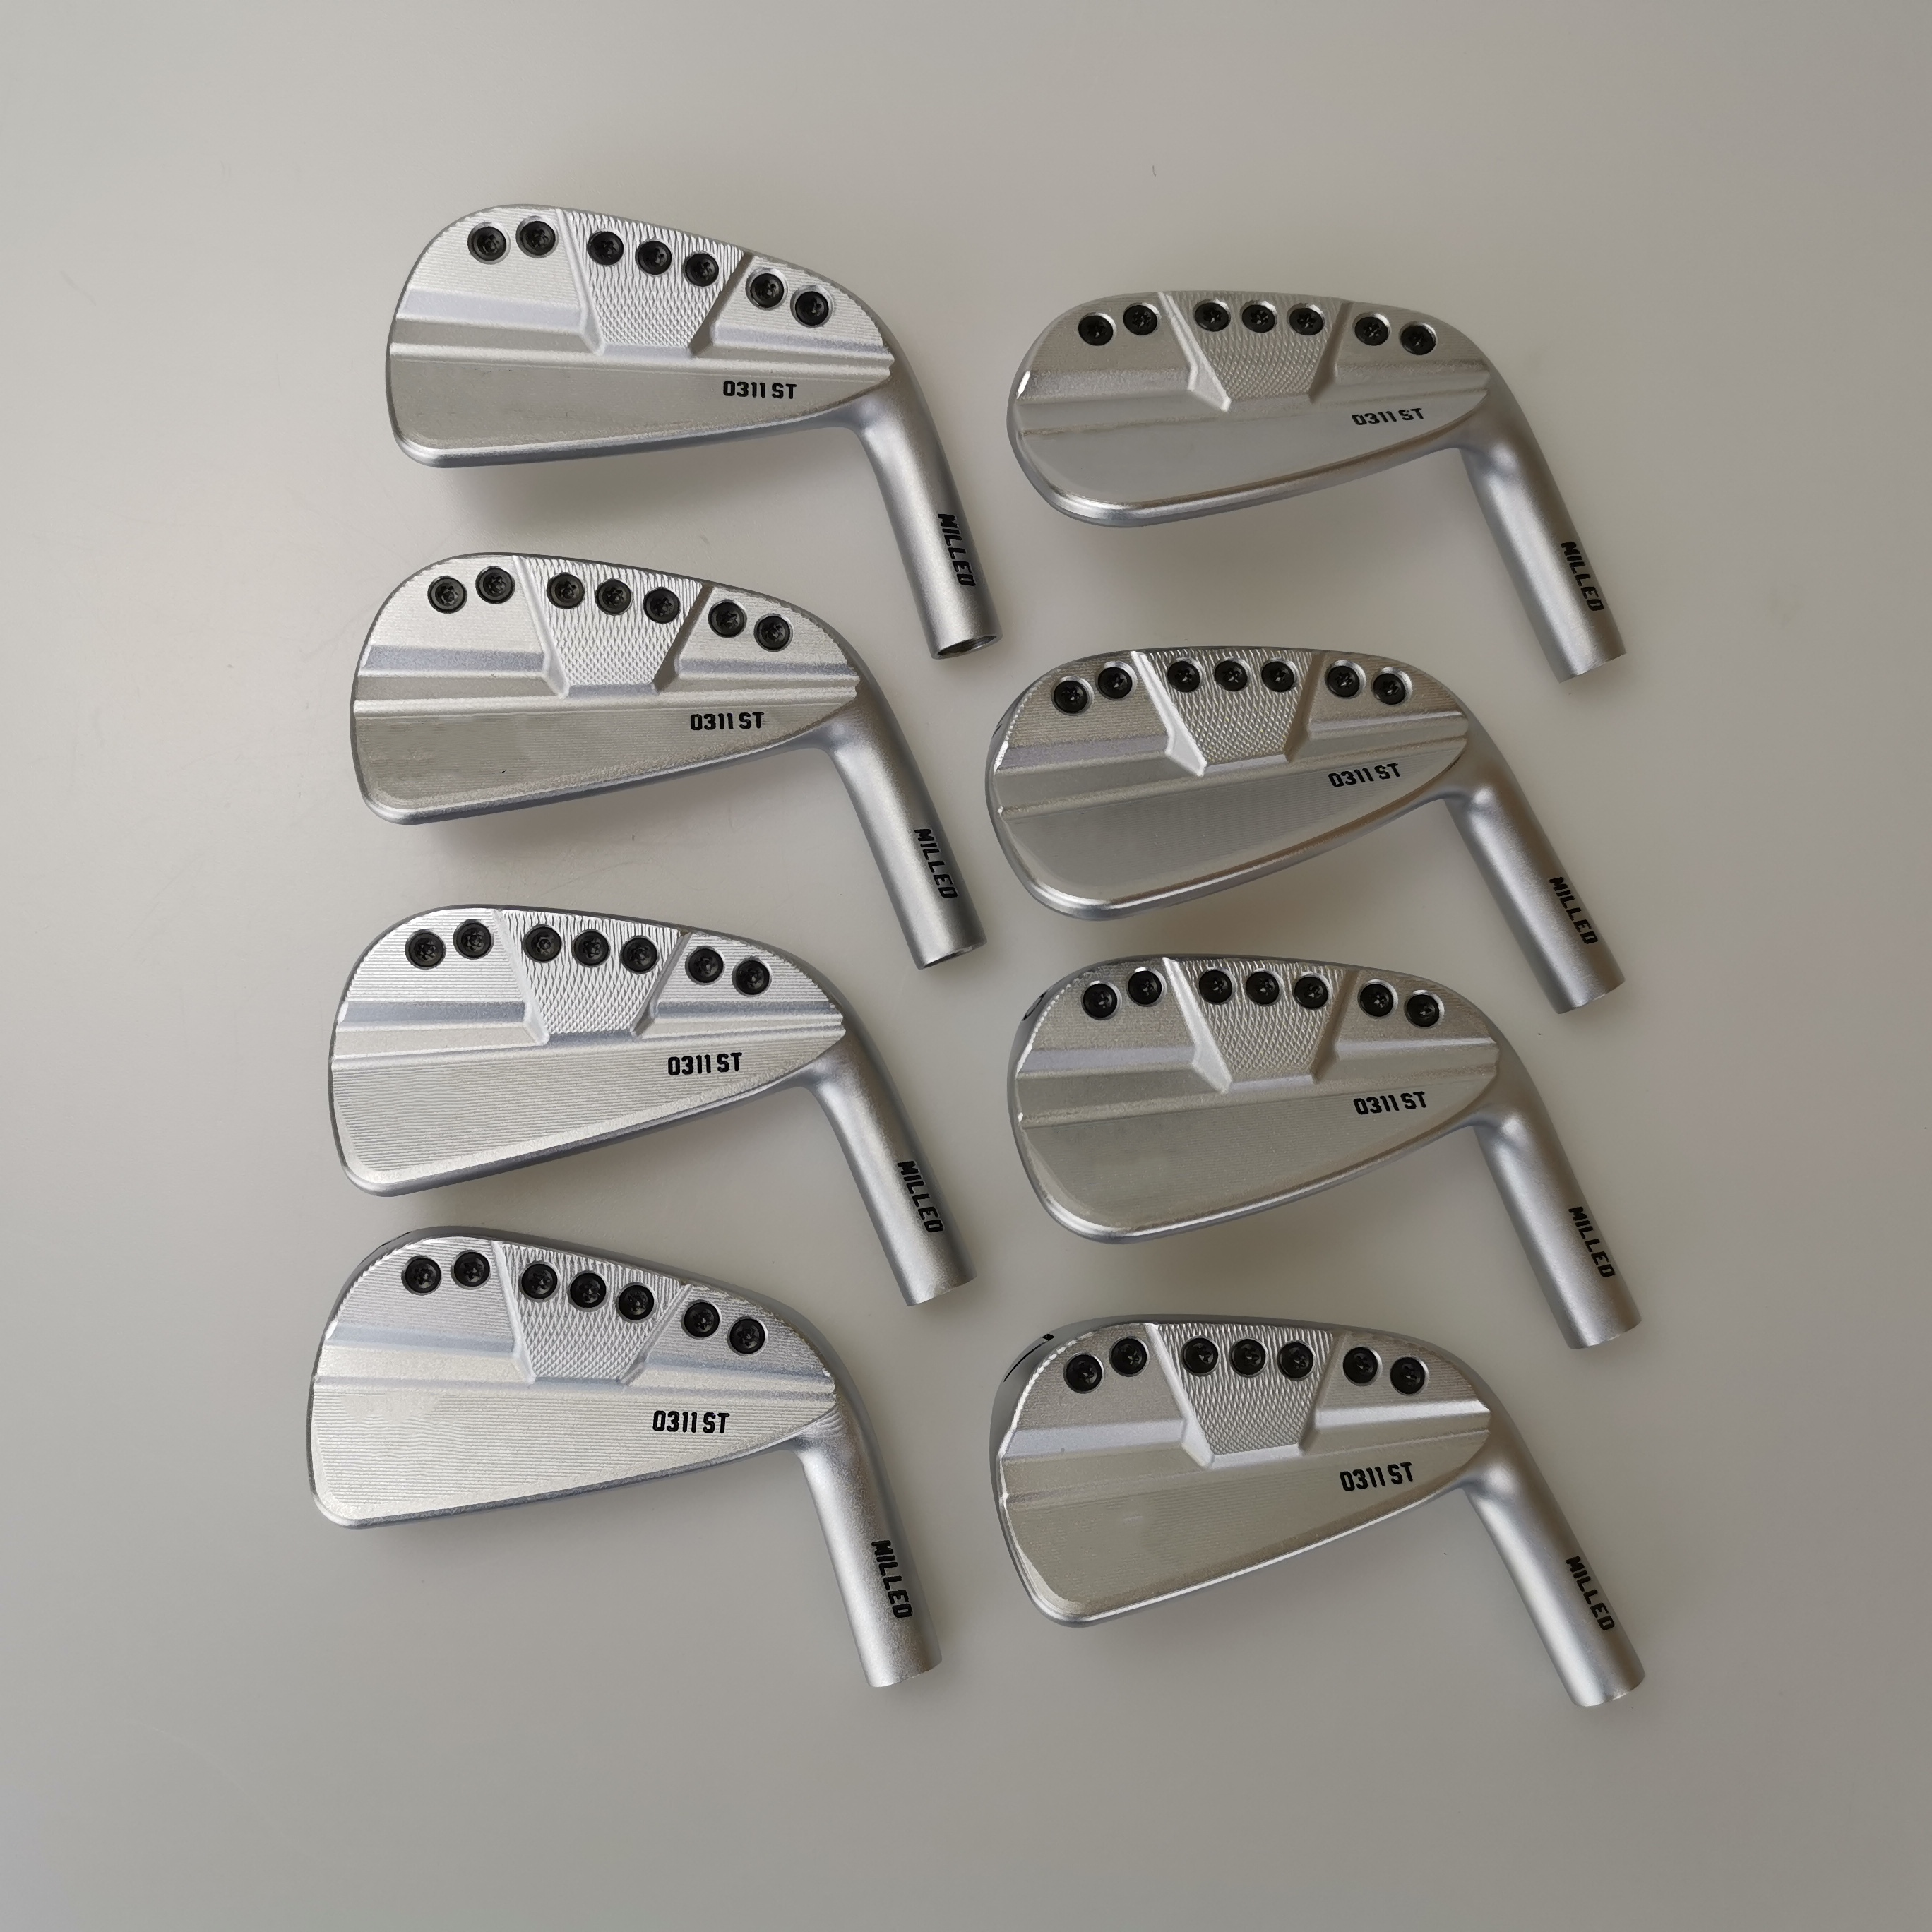 OEM 0311ST Golf Irons Set Sliver Golf Forged Iron 3-9W A Set Of 8 Pieces R / S Send Headcover Free Shiping